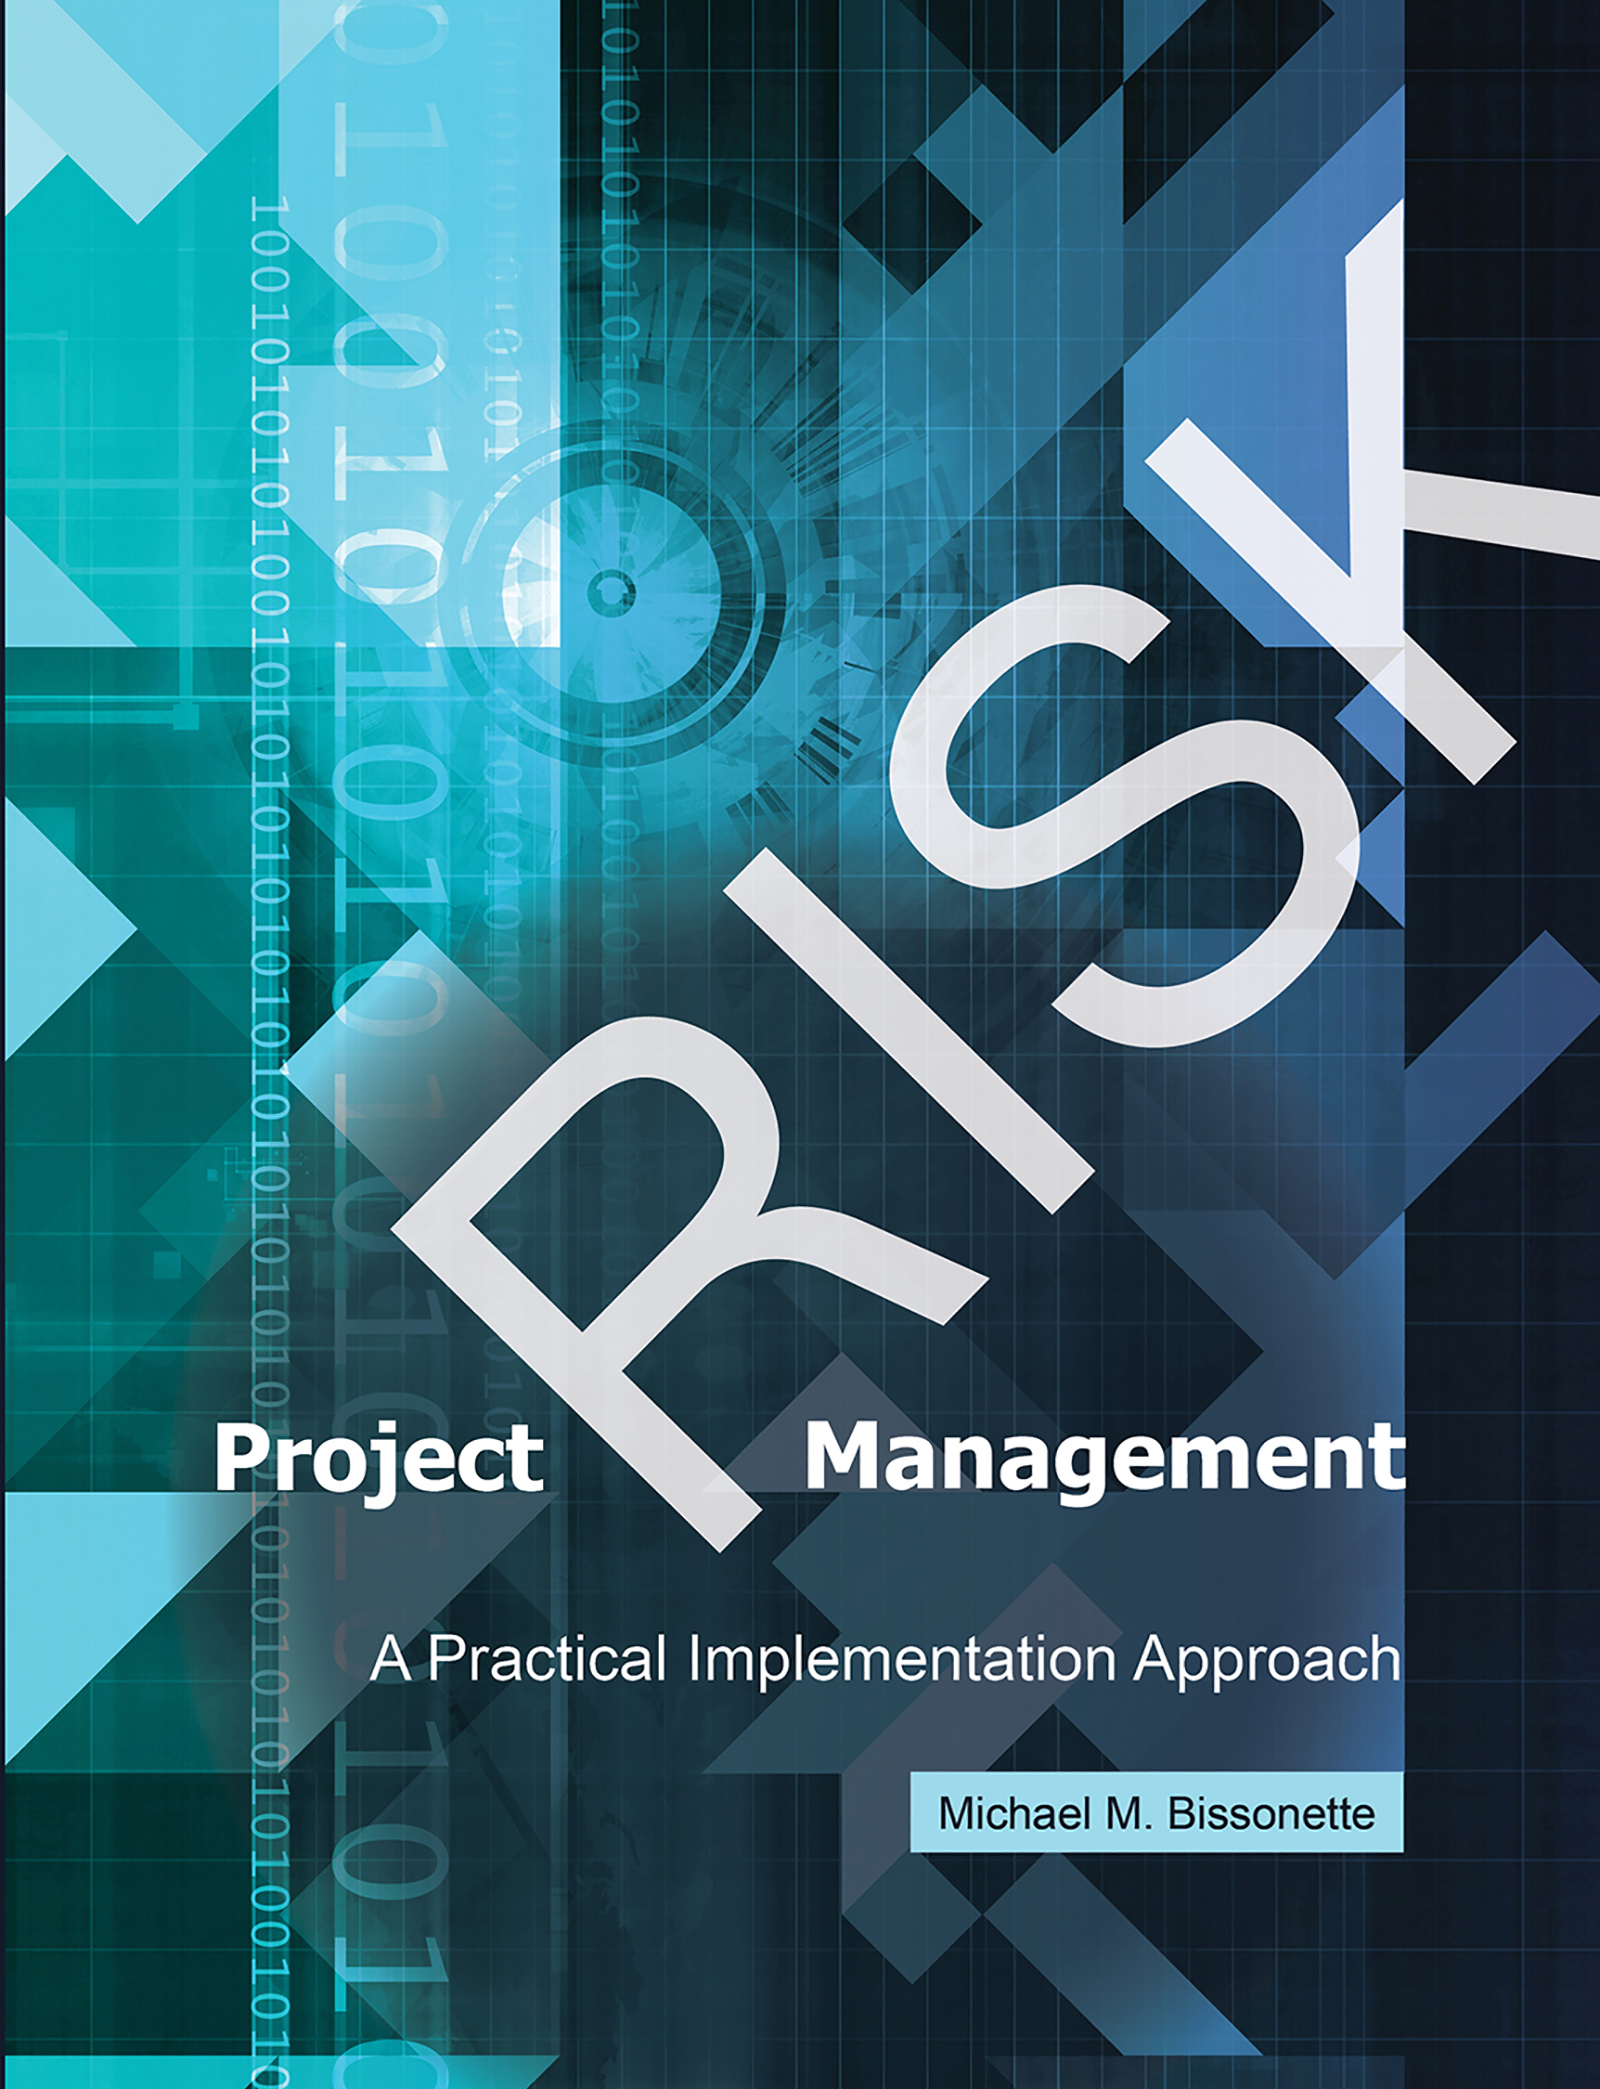 Download Ebook Project Risk Management by Michael M. Bissonette Pdf